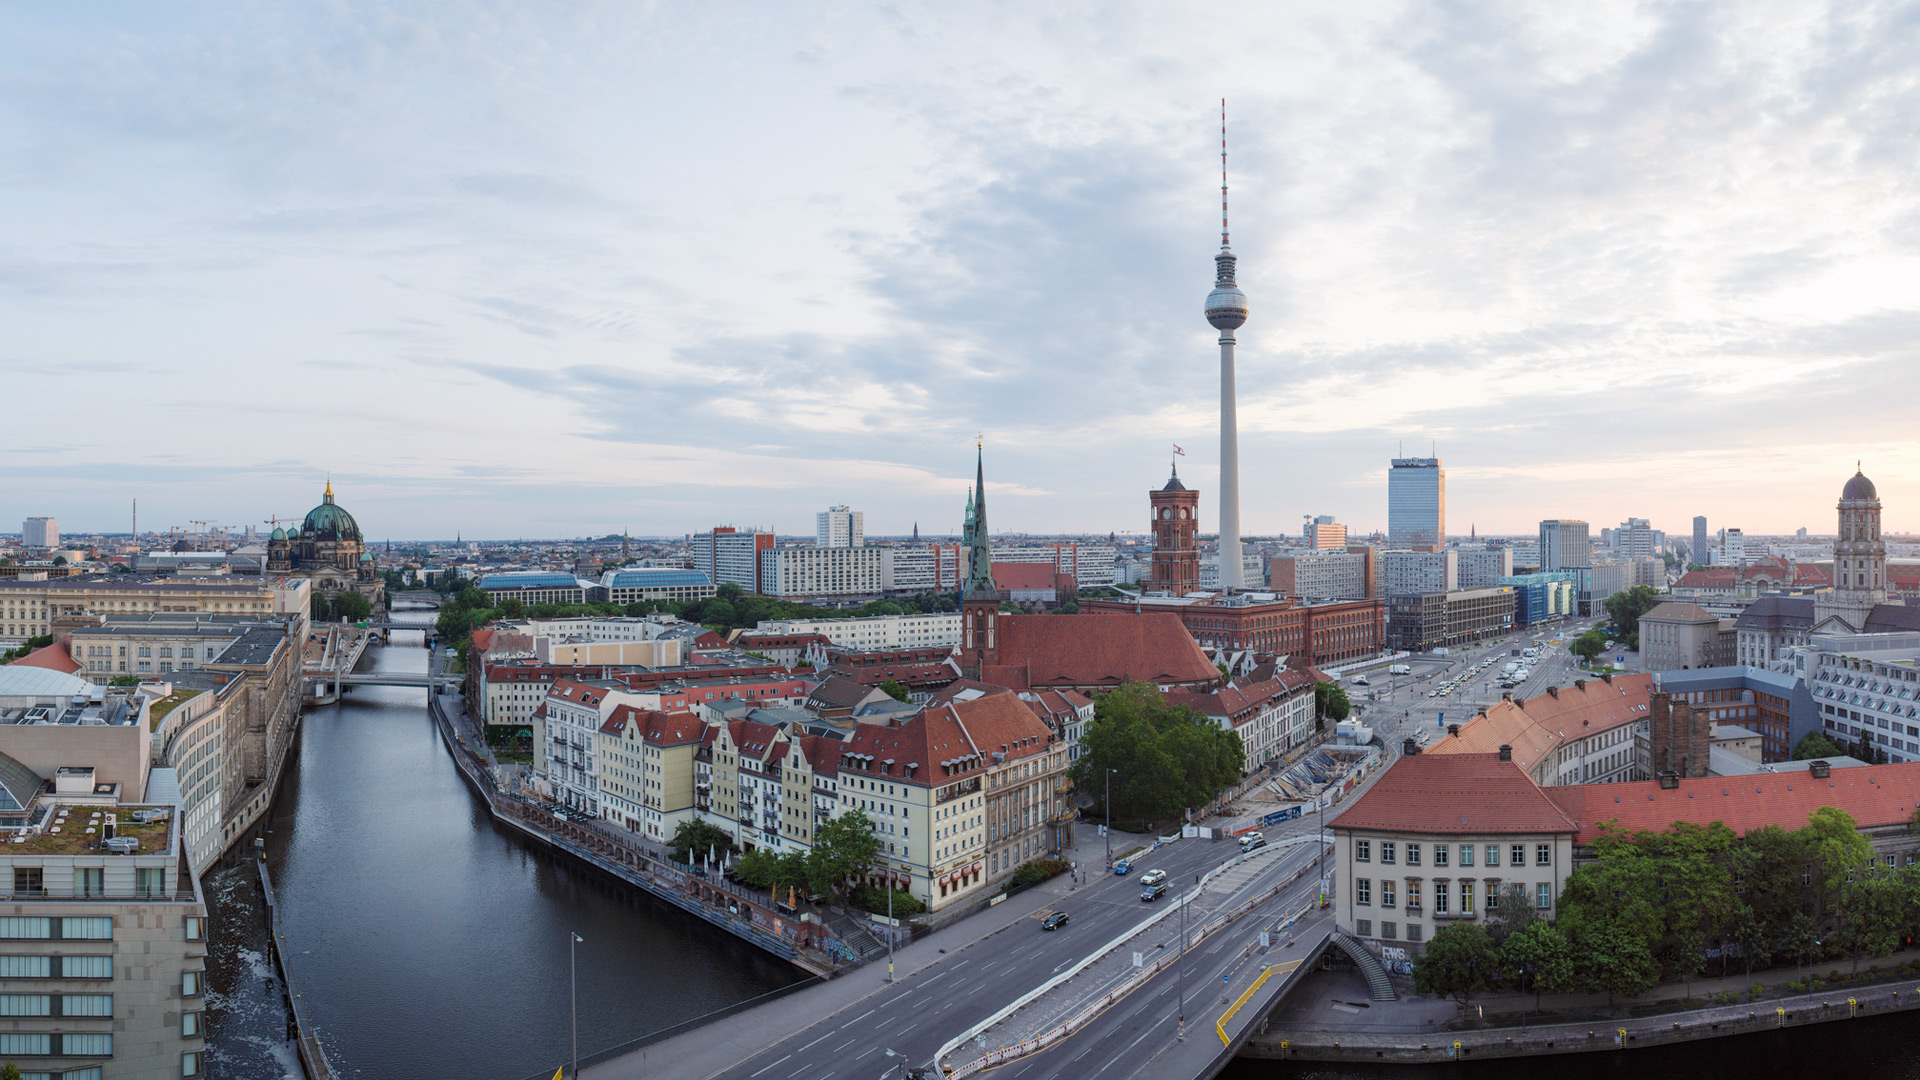 The city of Berlin with the television tower